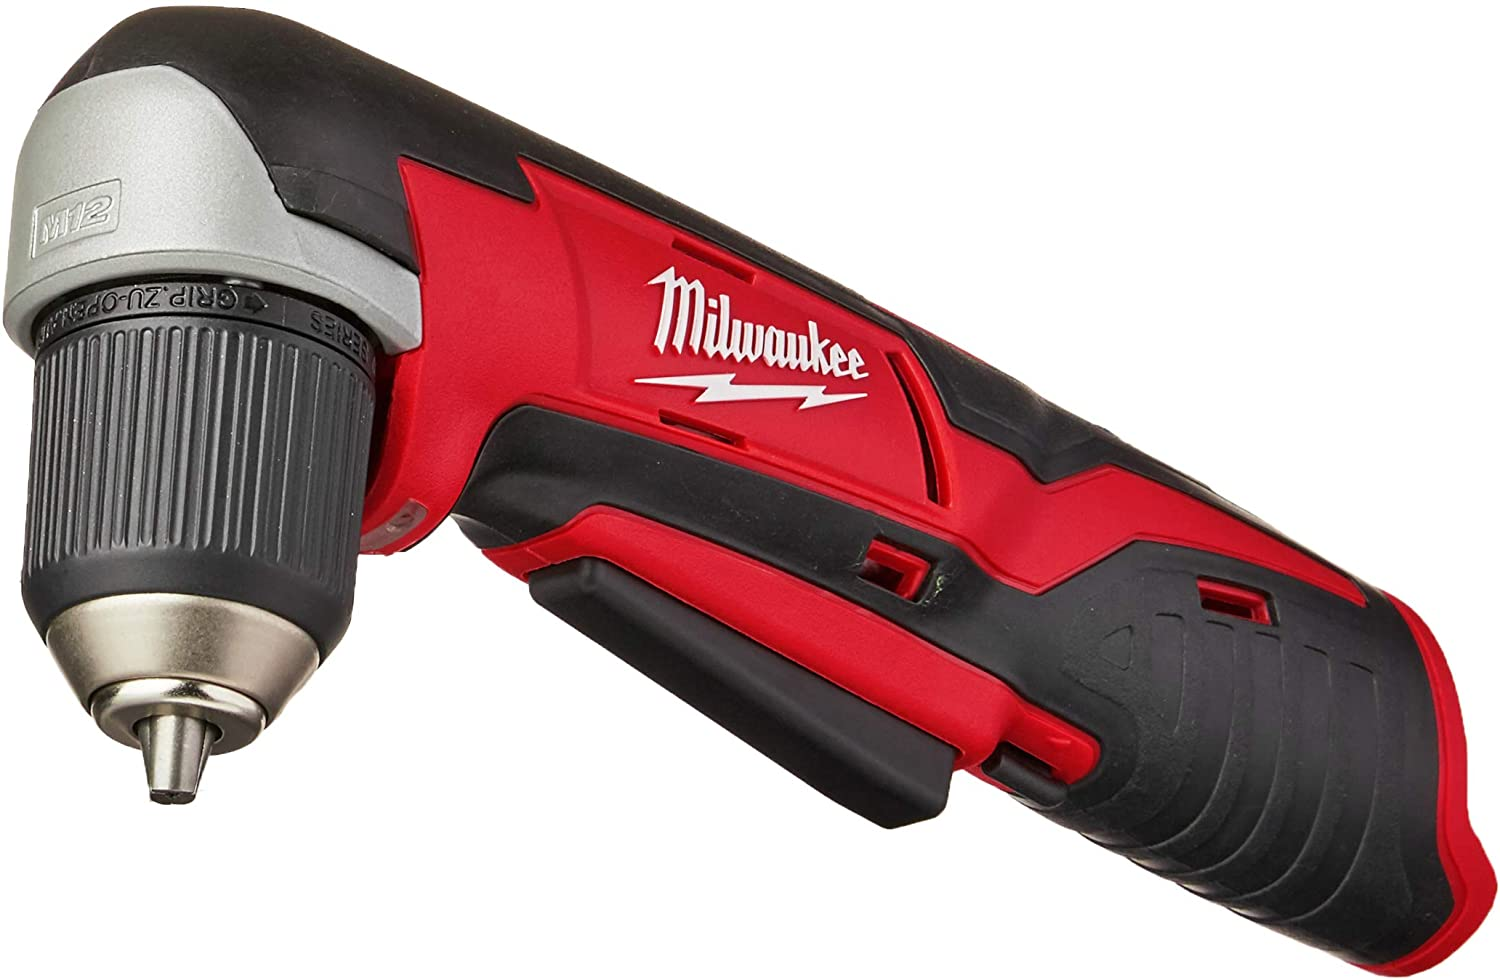 MILWAUKEE'S 2415-20 M12 12-Volt Lithium-Ion Cordless Right Angle Drill